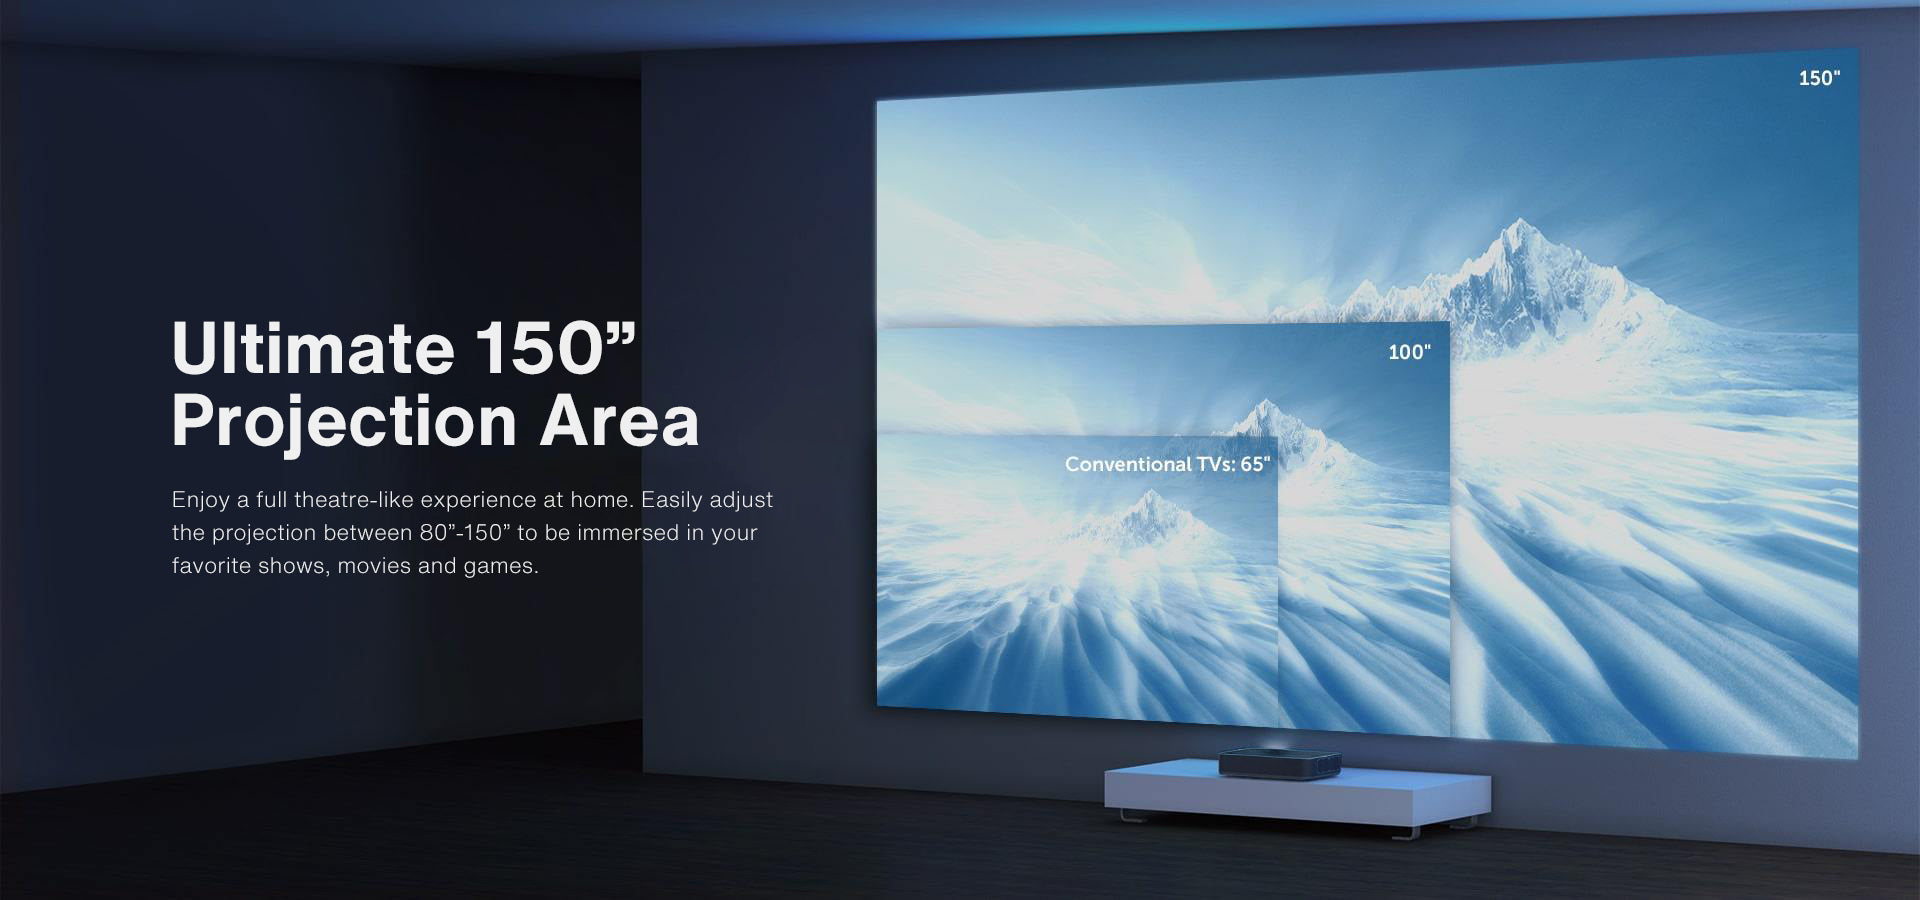 Ultimate 150'' Projection Area Enjoy a full theatre-like experience at home. Easily adjust the protection between 80'' - 150'' to be immersed in your favorite shows, movies and games.